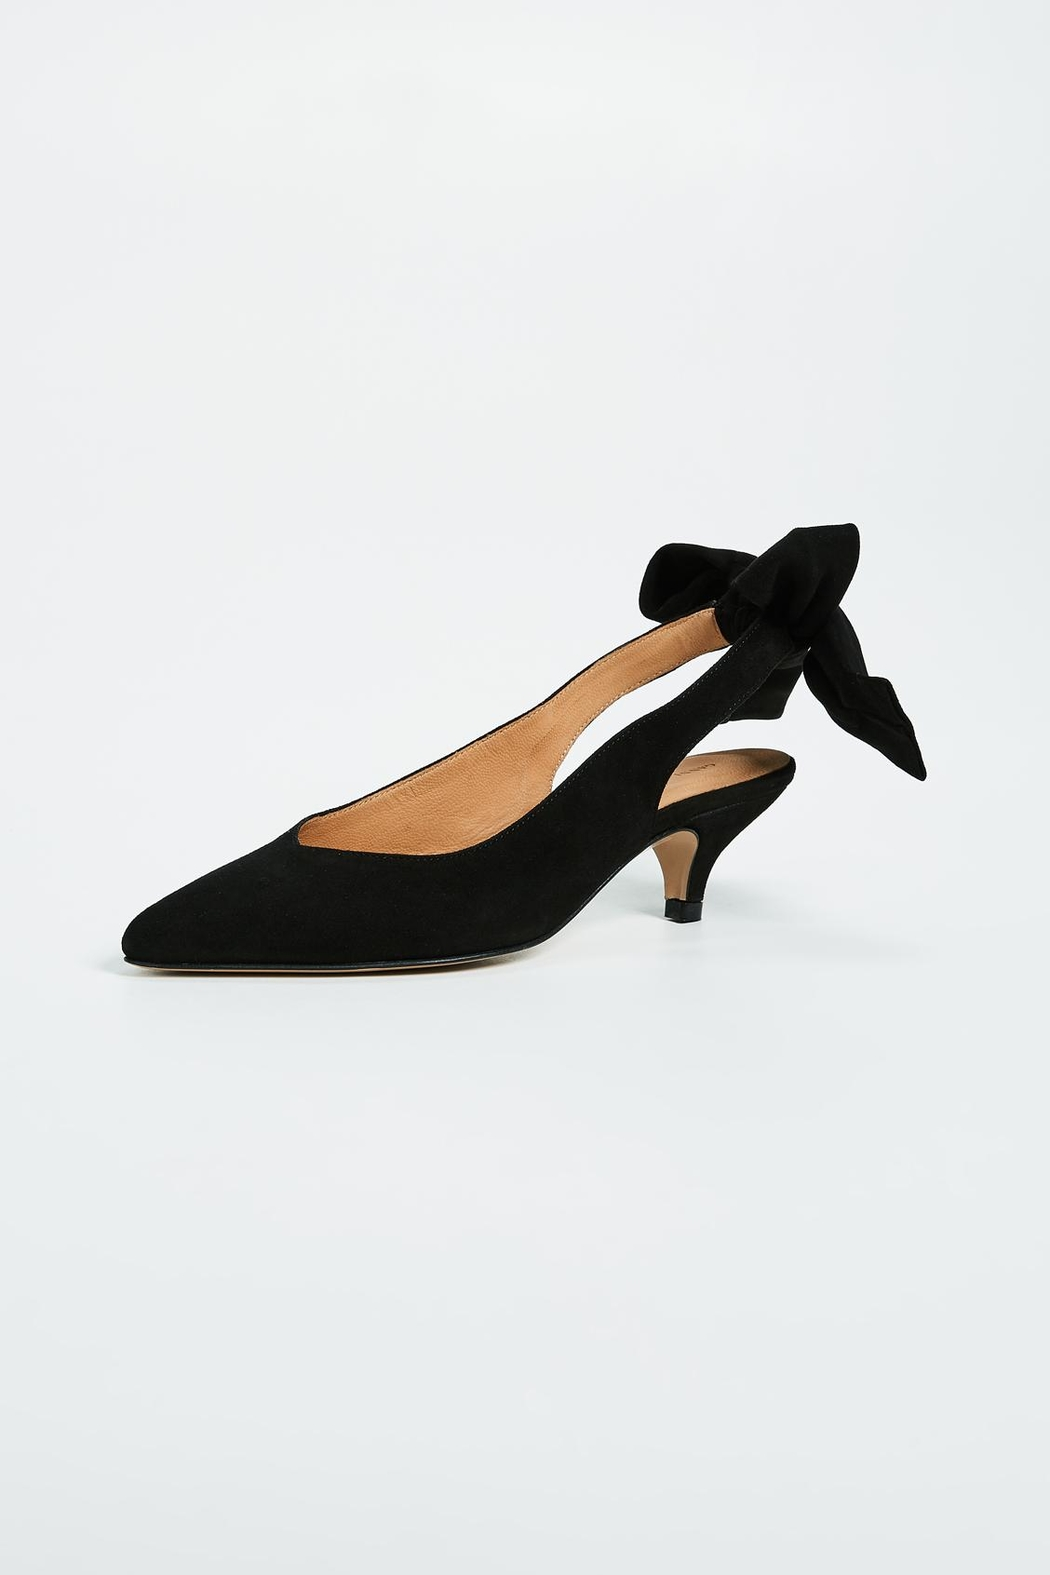 681e4a1ff58 Ganni Sabine Pumps from New Jersey by Rouge Princeton — Shoptiques